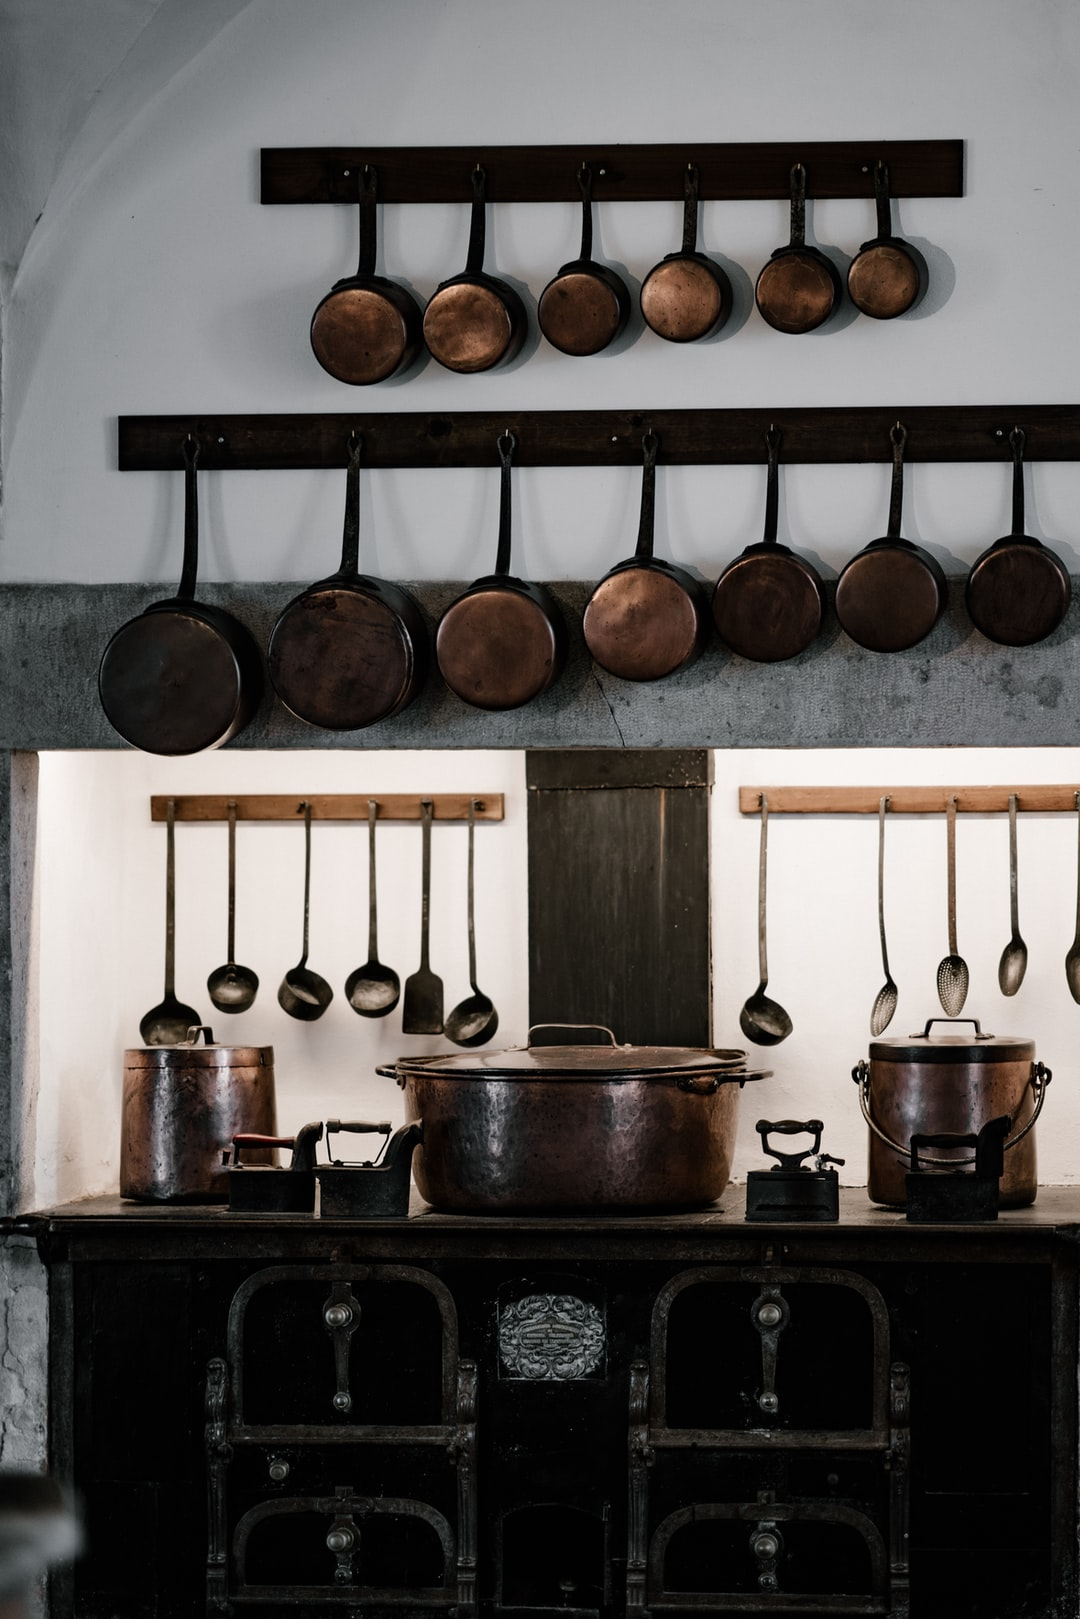 Old fashioned kitchen with copper pots